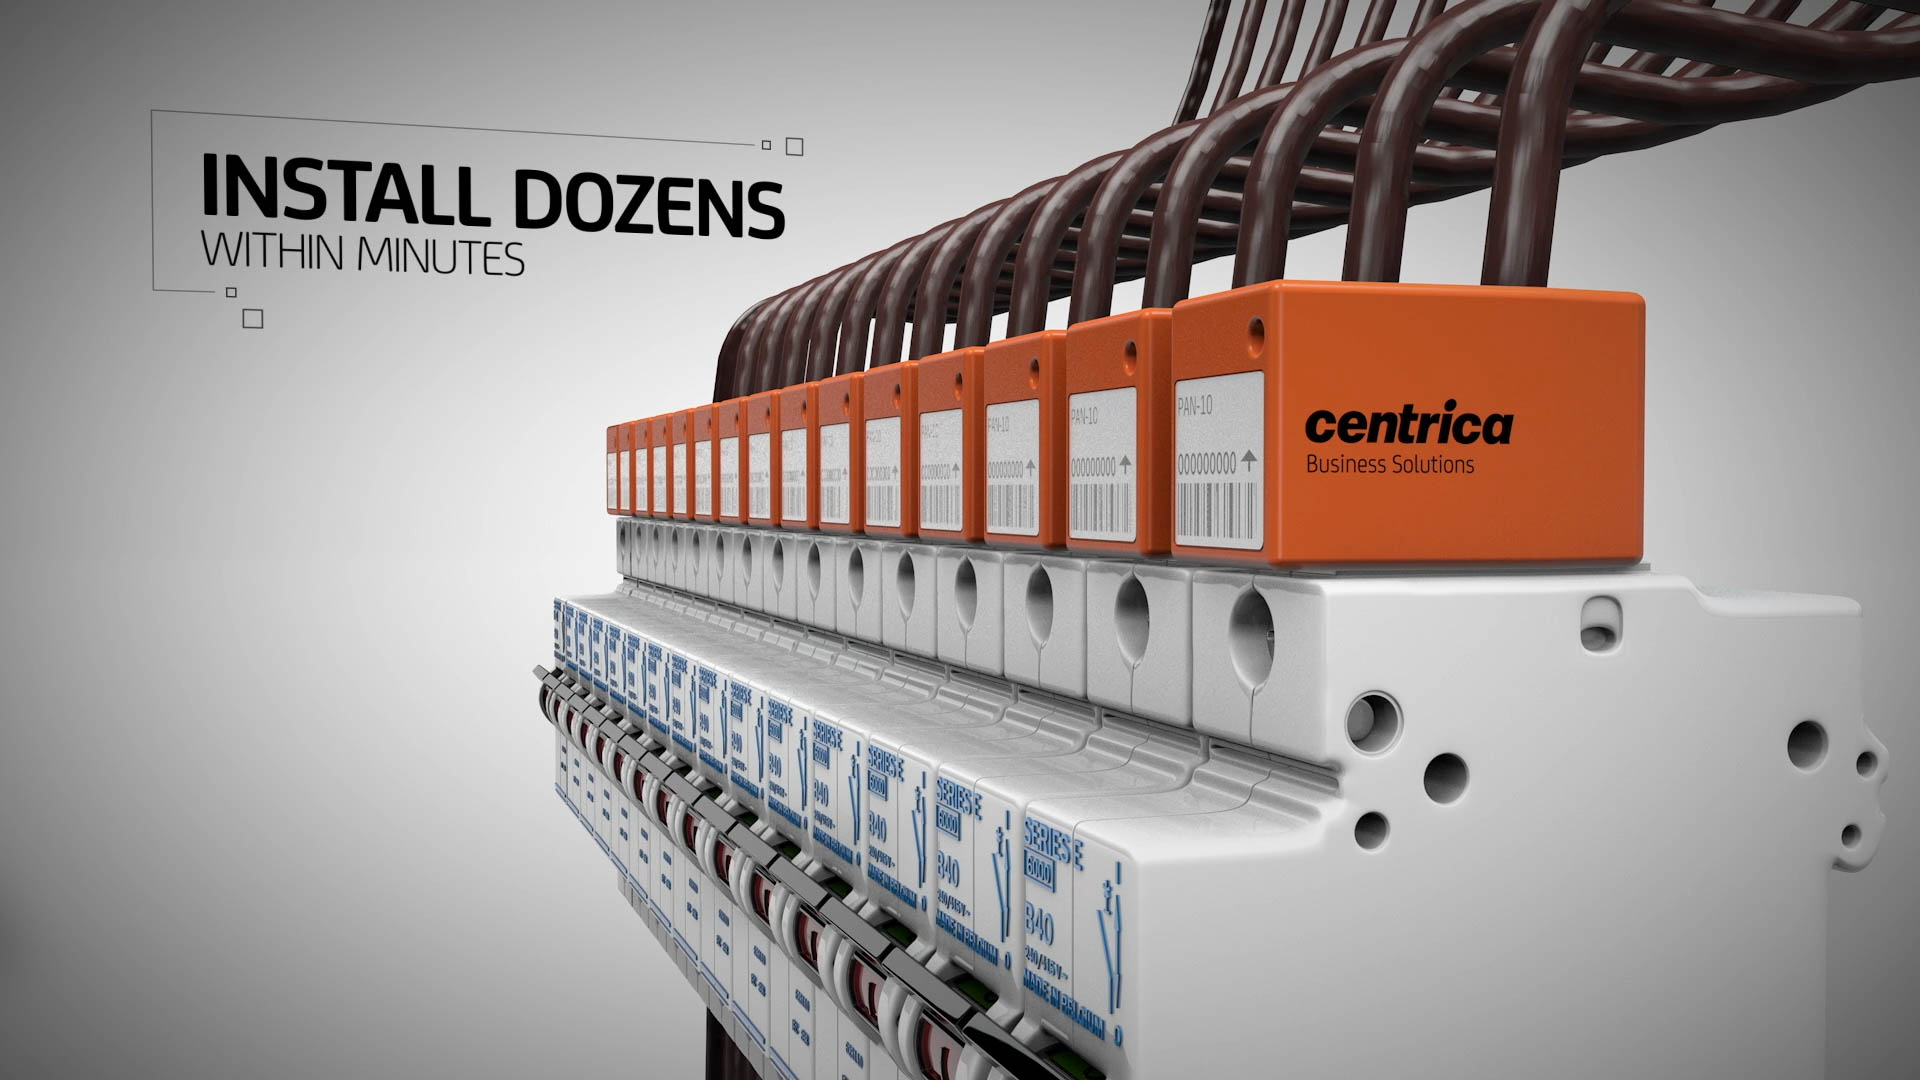 Centrica Pan-10 Install dozens within minutes